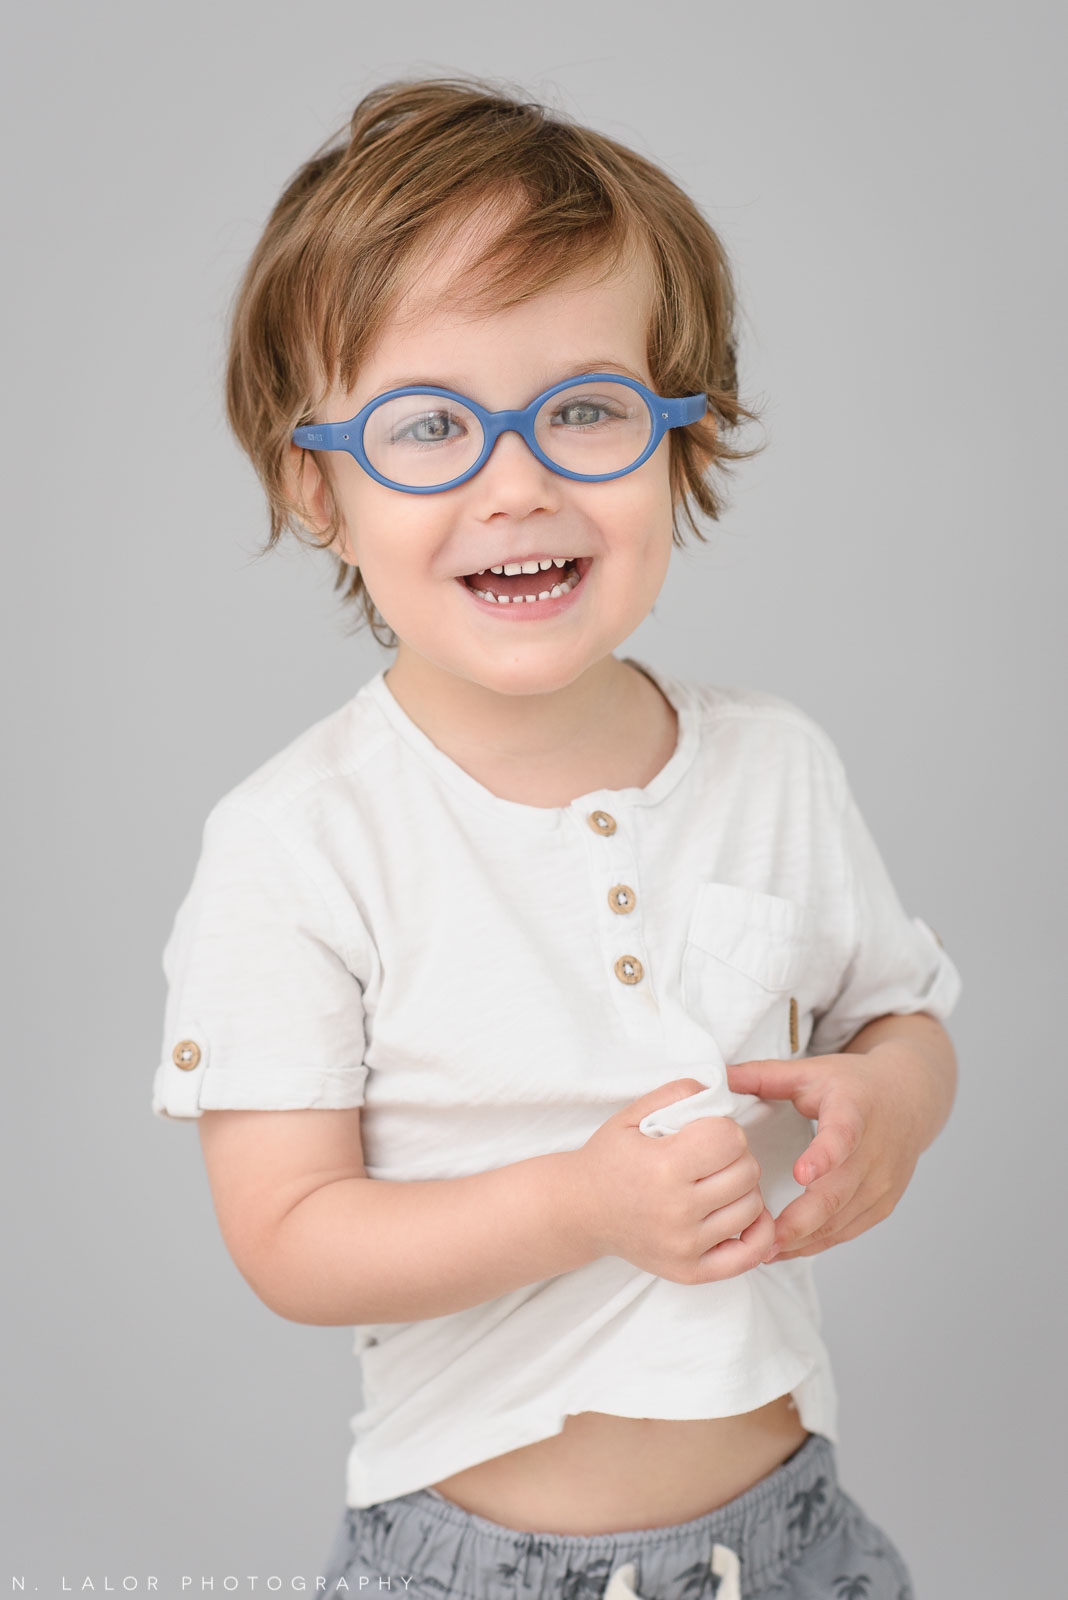 Laughing 3-yr old. Simple studio portrait session with N. Lalor Photography in Greenwich, CT.